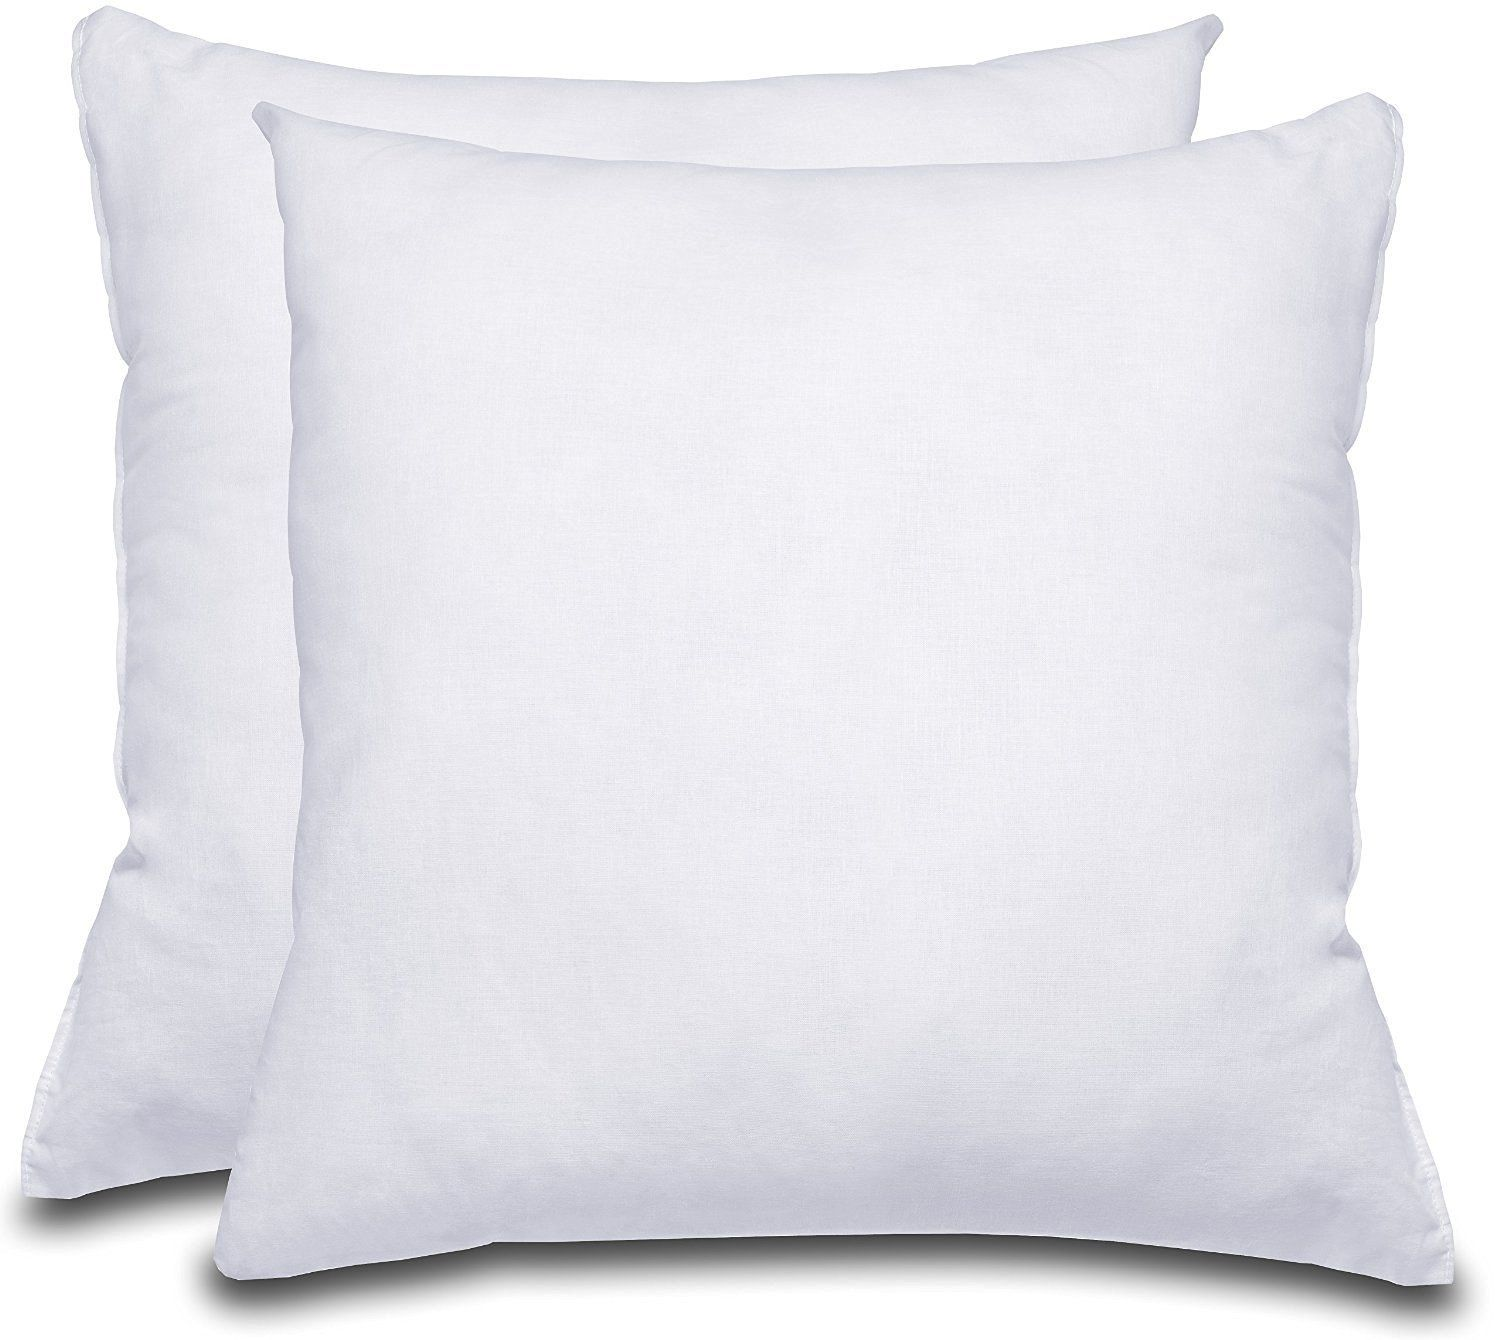 euro pillows x blanket picture inspirations cushion gallery inserts stunning pillow insert target